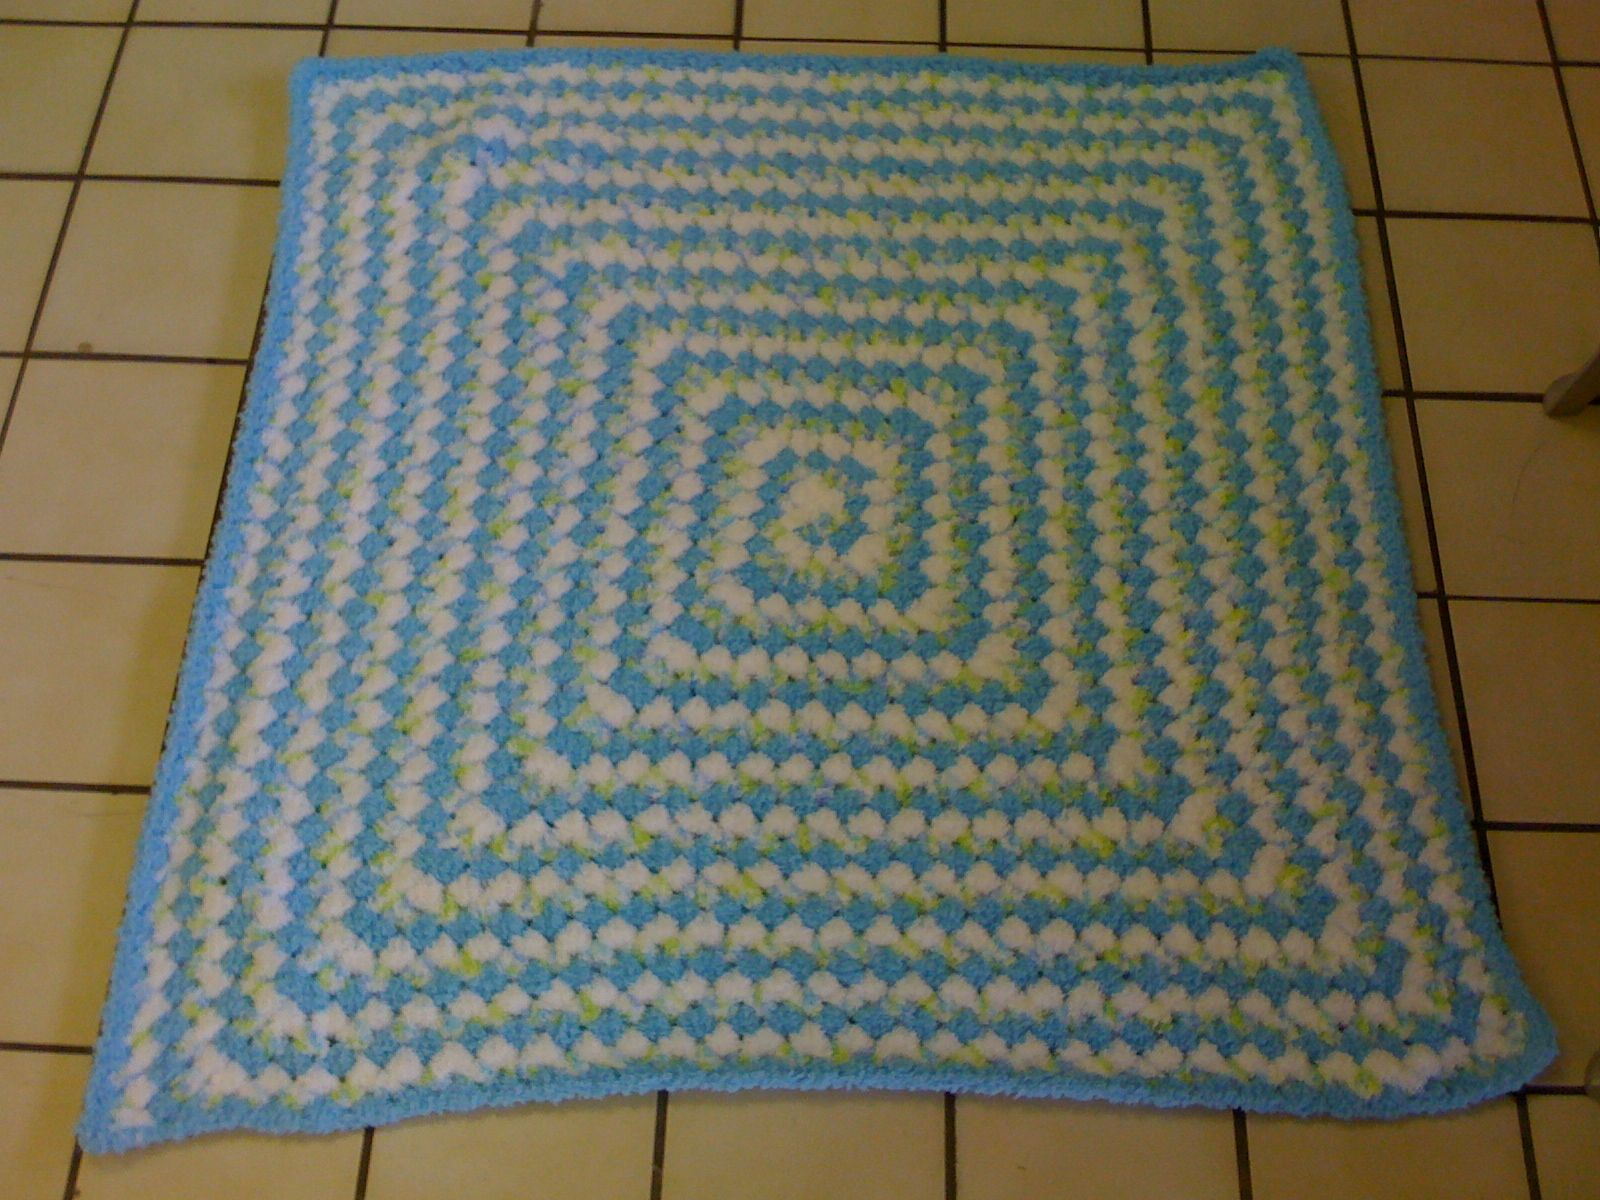 Never Ending Granny Square For A Boy Made From Bernat Pipsqueak Yarn Deliciously Soft Granny Square Crochet Baby Crafty